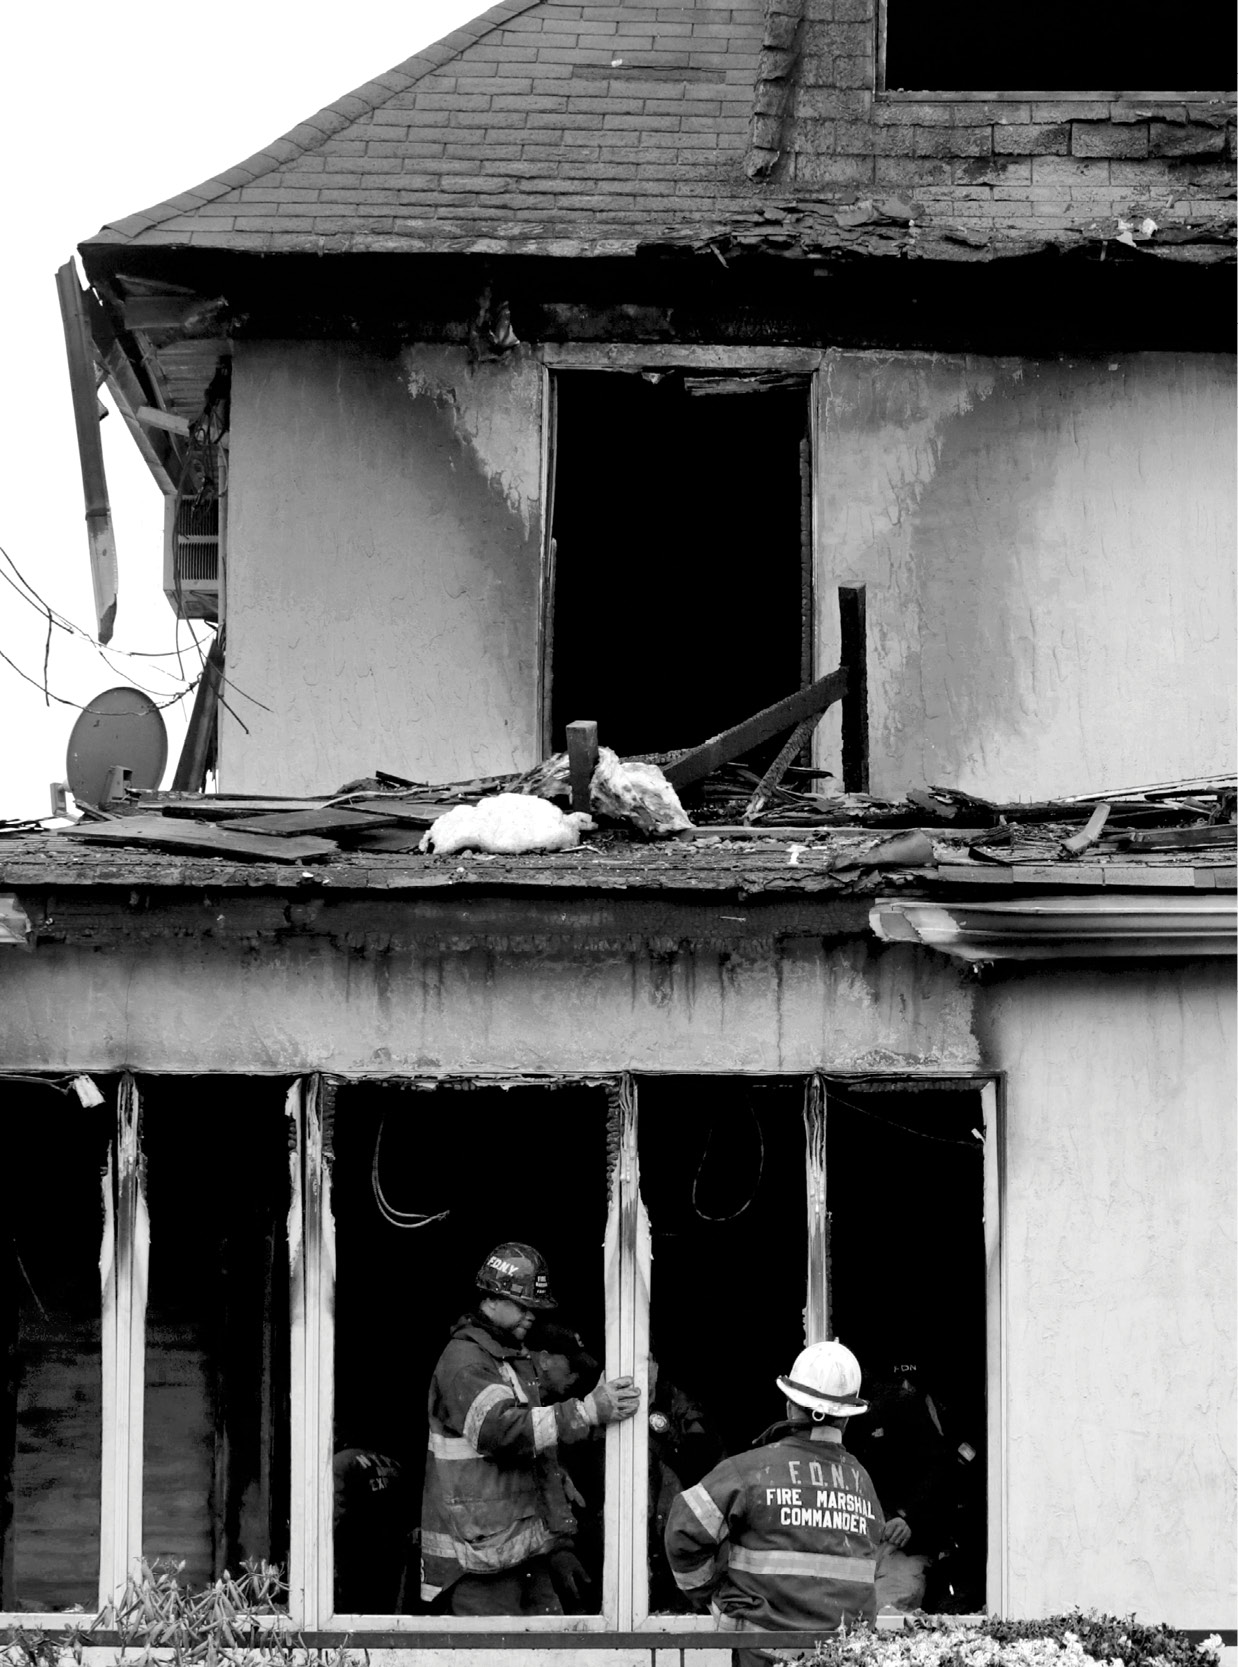 Firefighters inspect the scene of a fatal fire in New York.